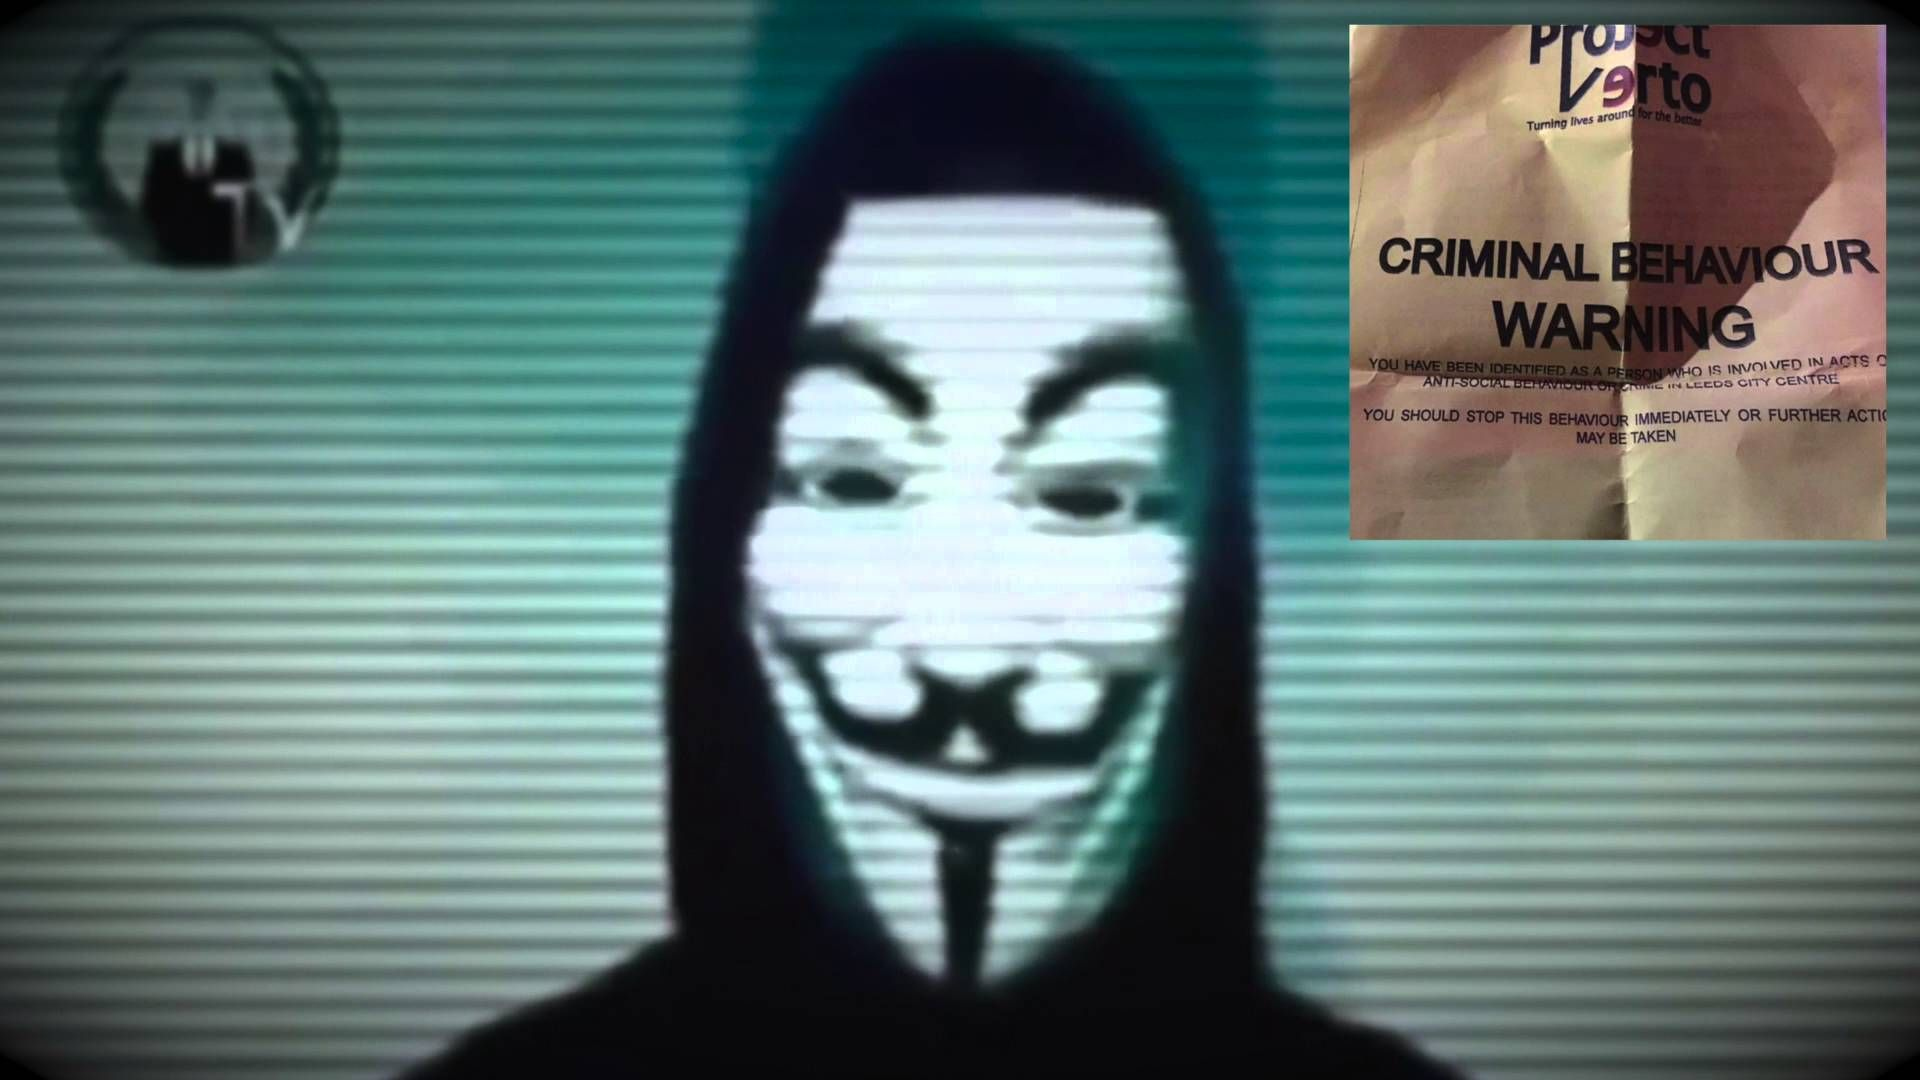 how to call anonymously iphone uk